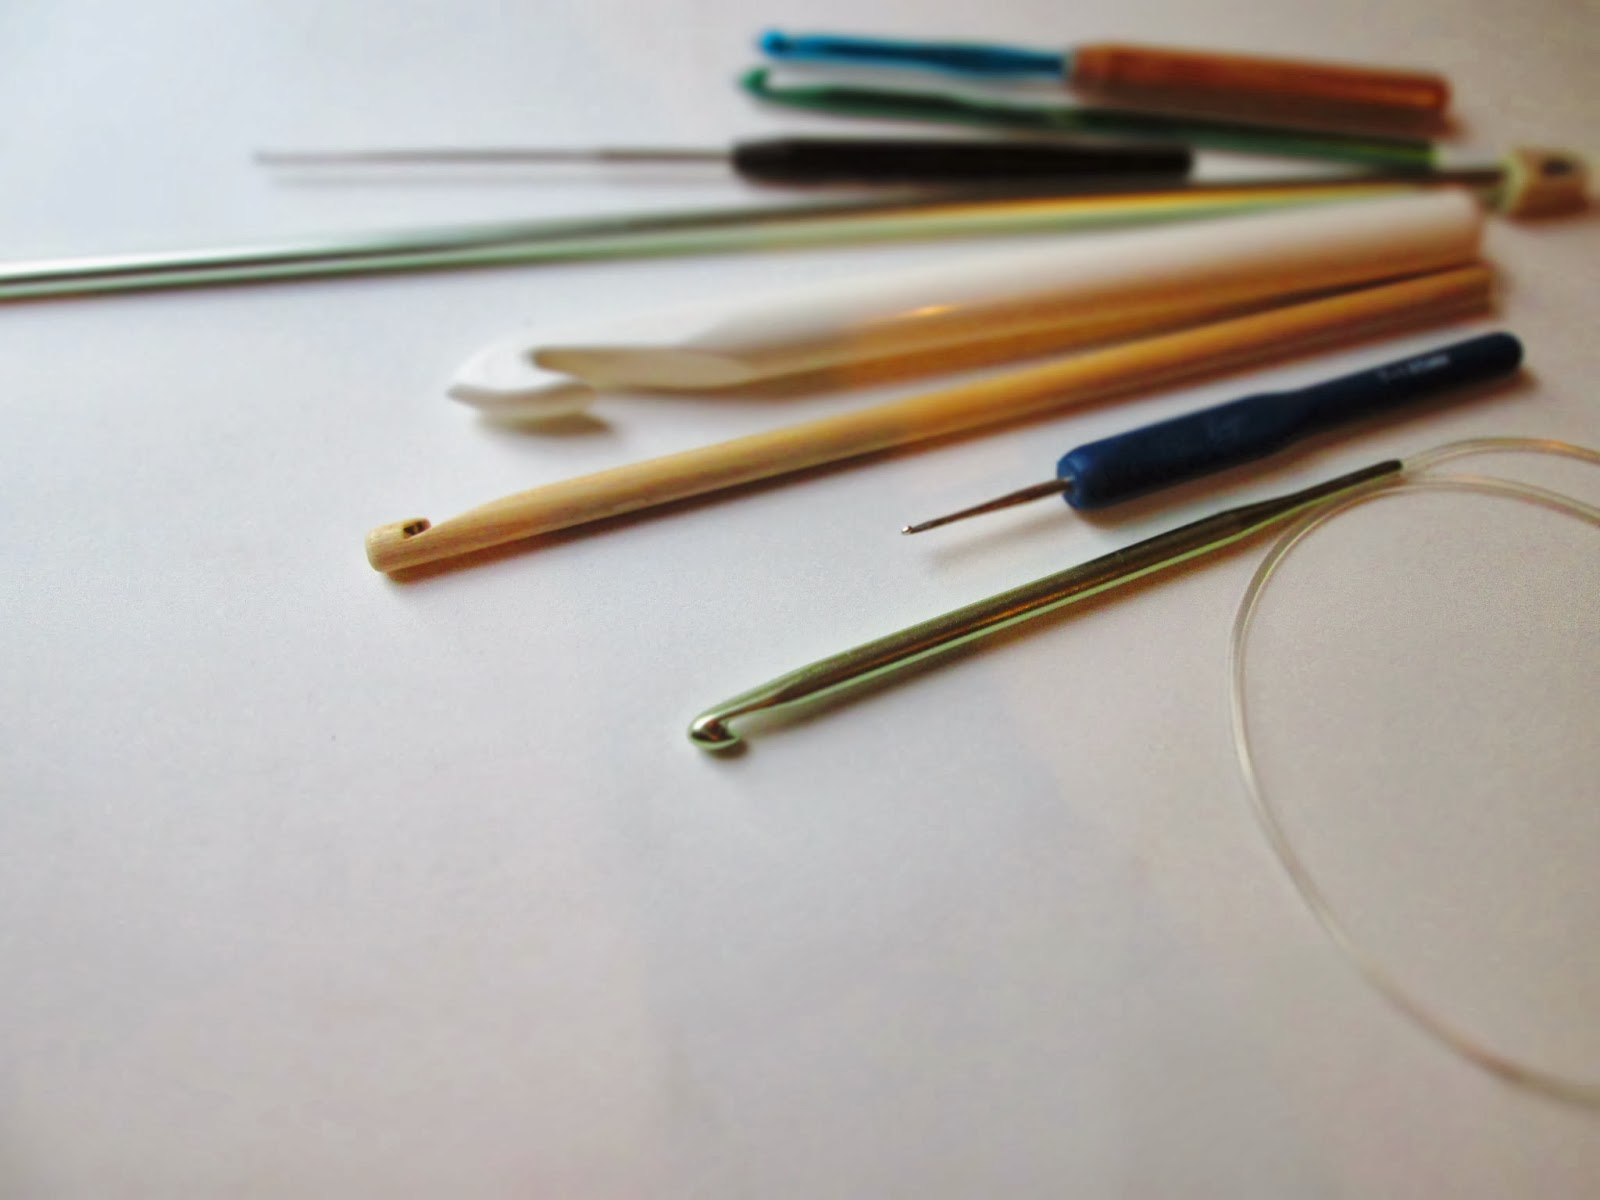 gypsy daughter essays a brief introduction to crochet hooks a collection of crochet hooks tunisian cro tat filet jumbo